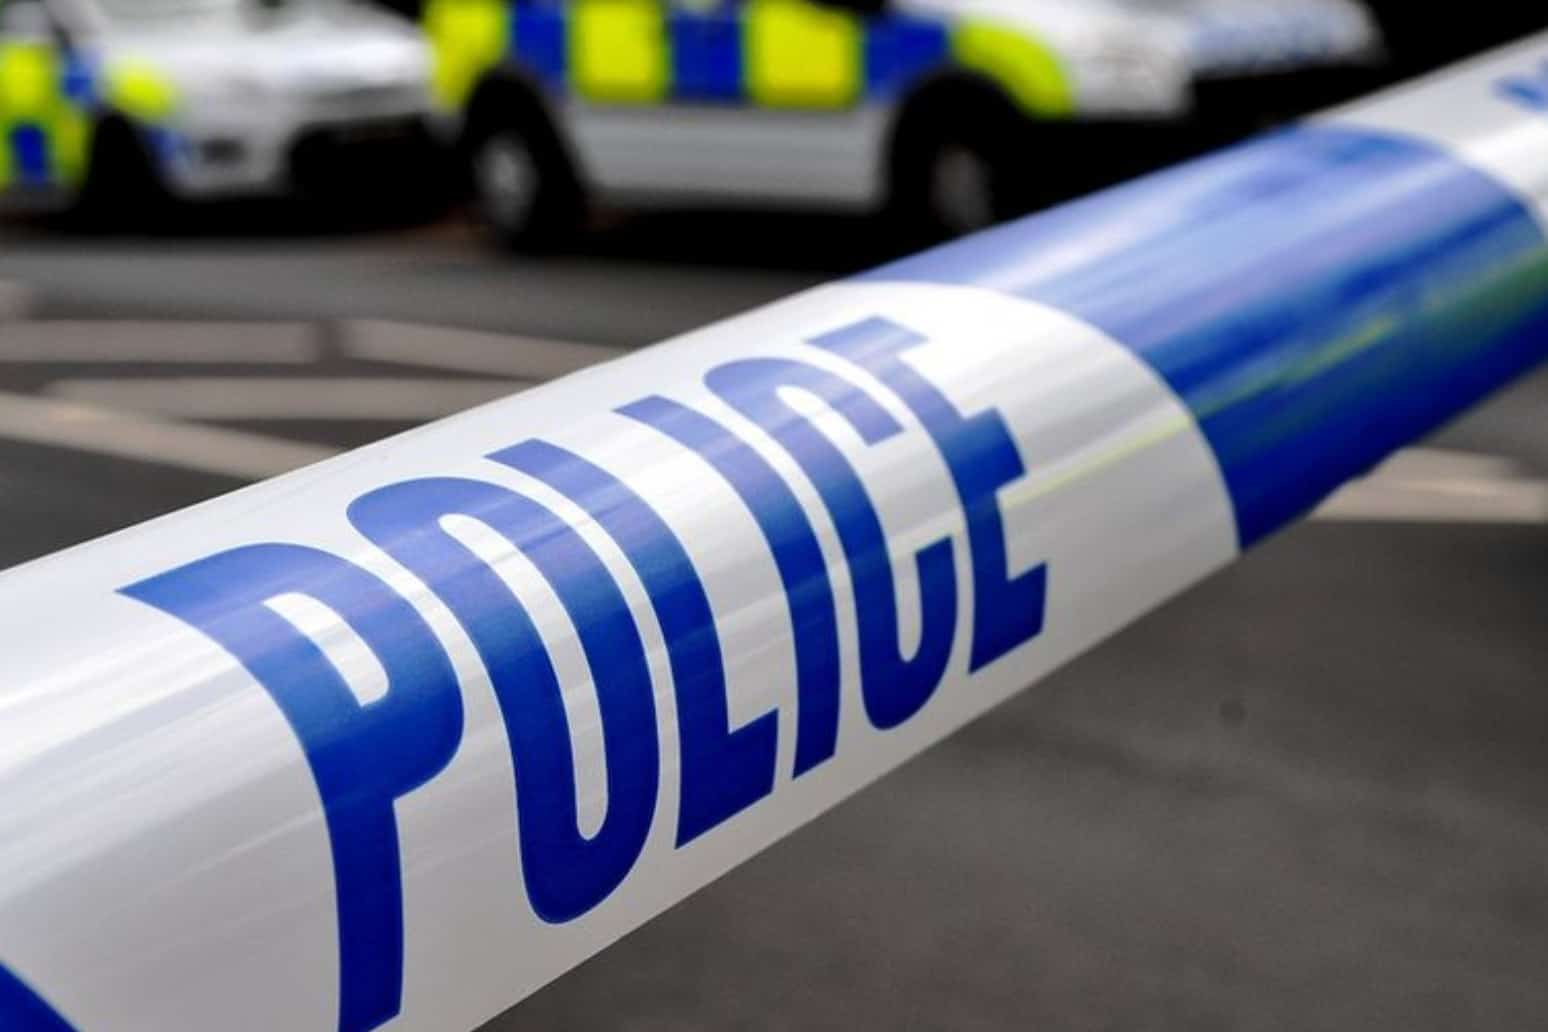 South Wales Police responding to 'serious' incident